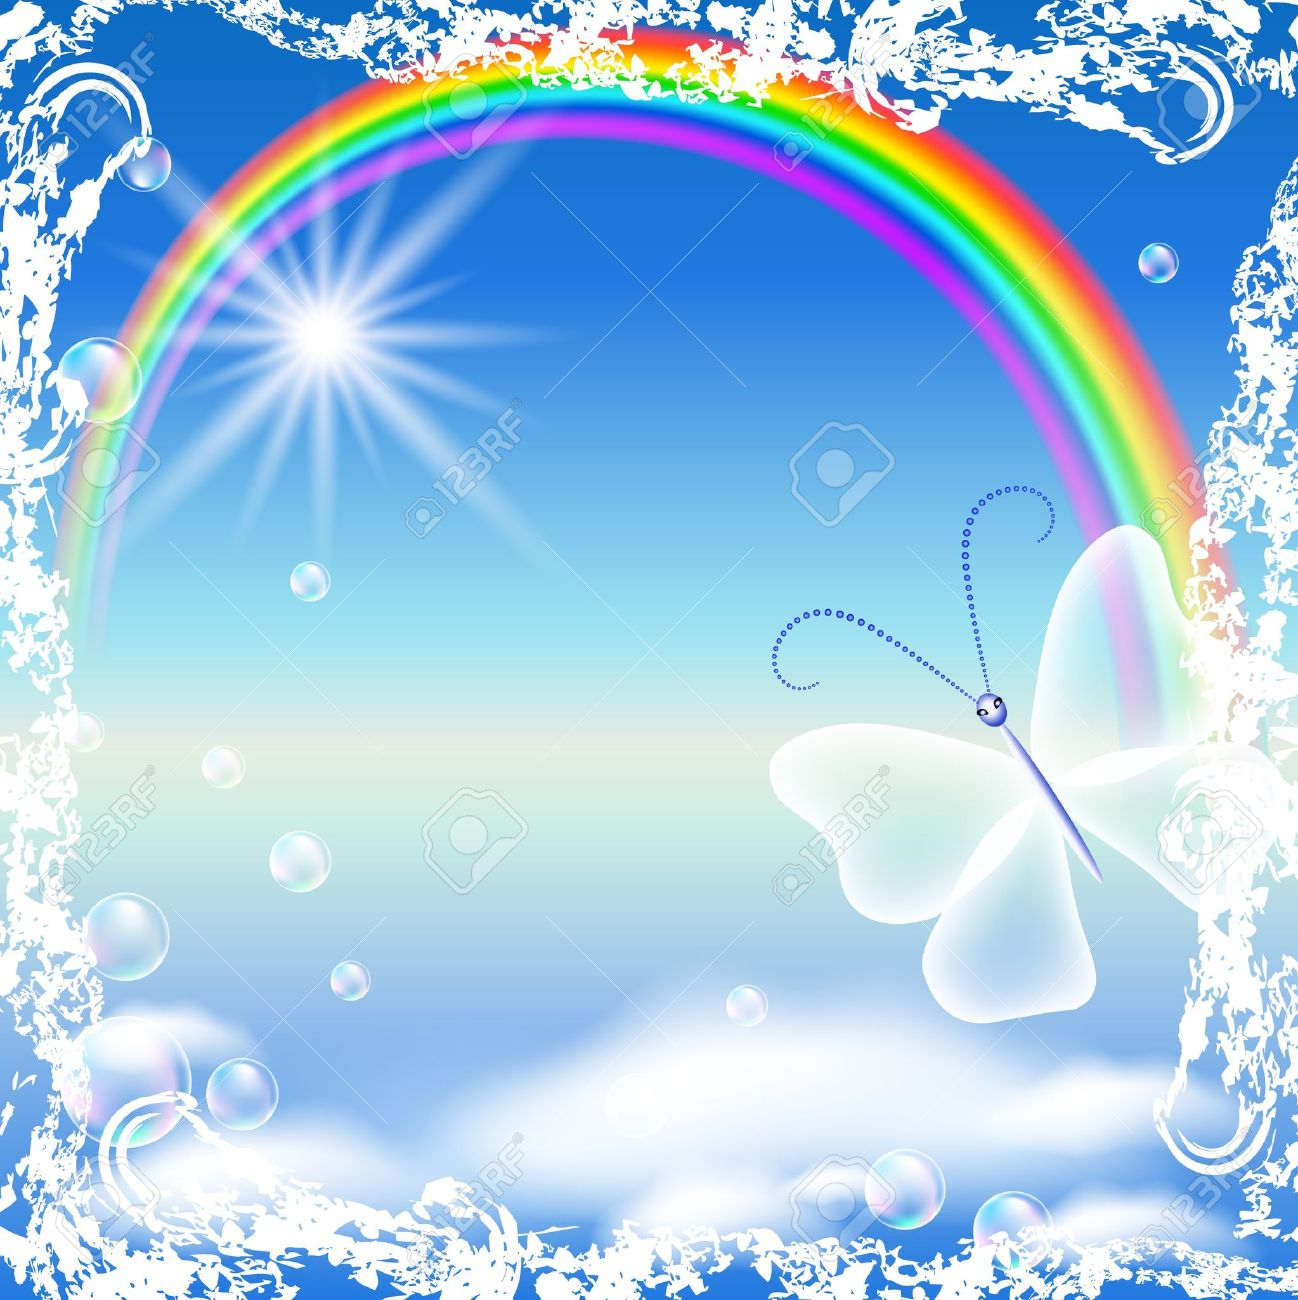 Rainbow, clouds and butterfly in grunge frame - 9810287